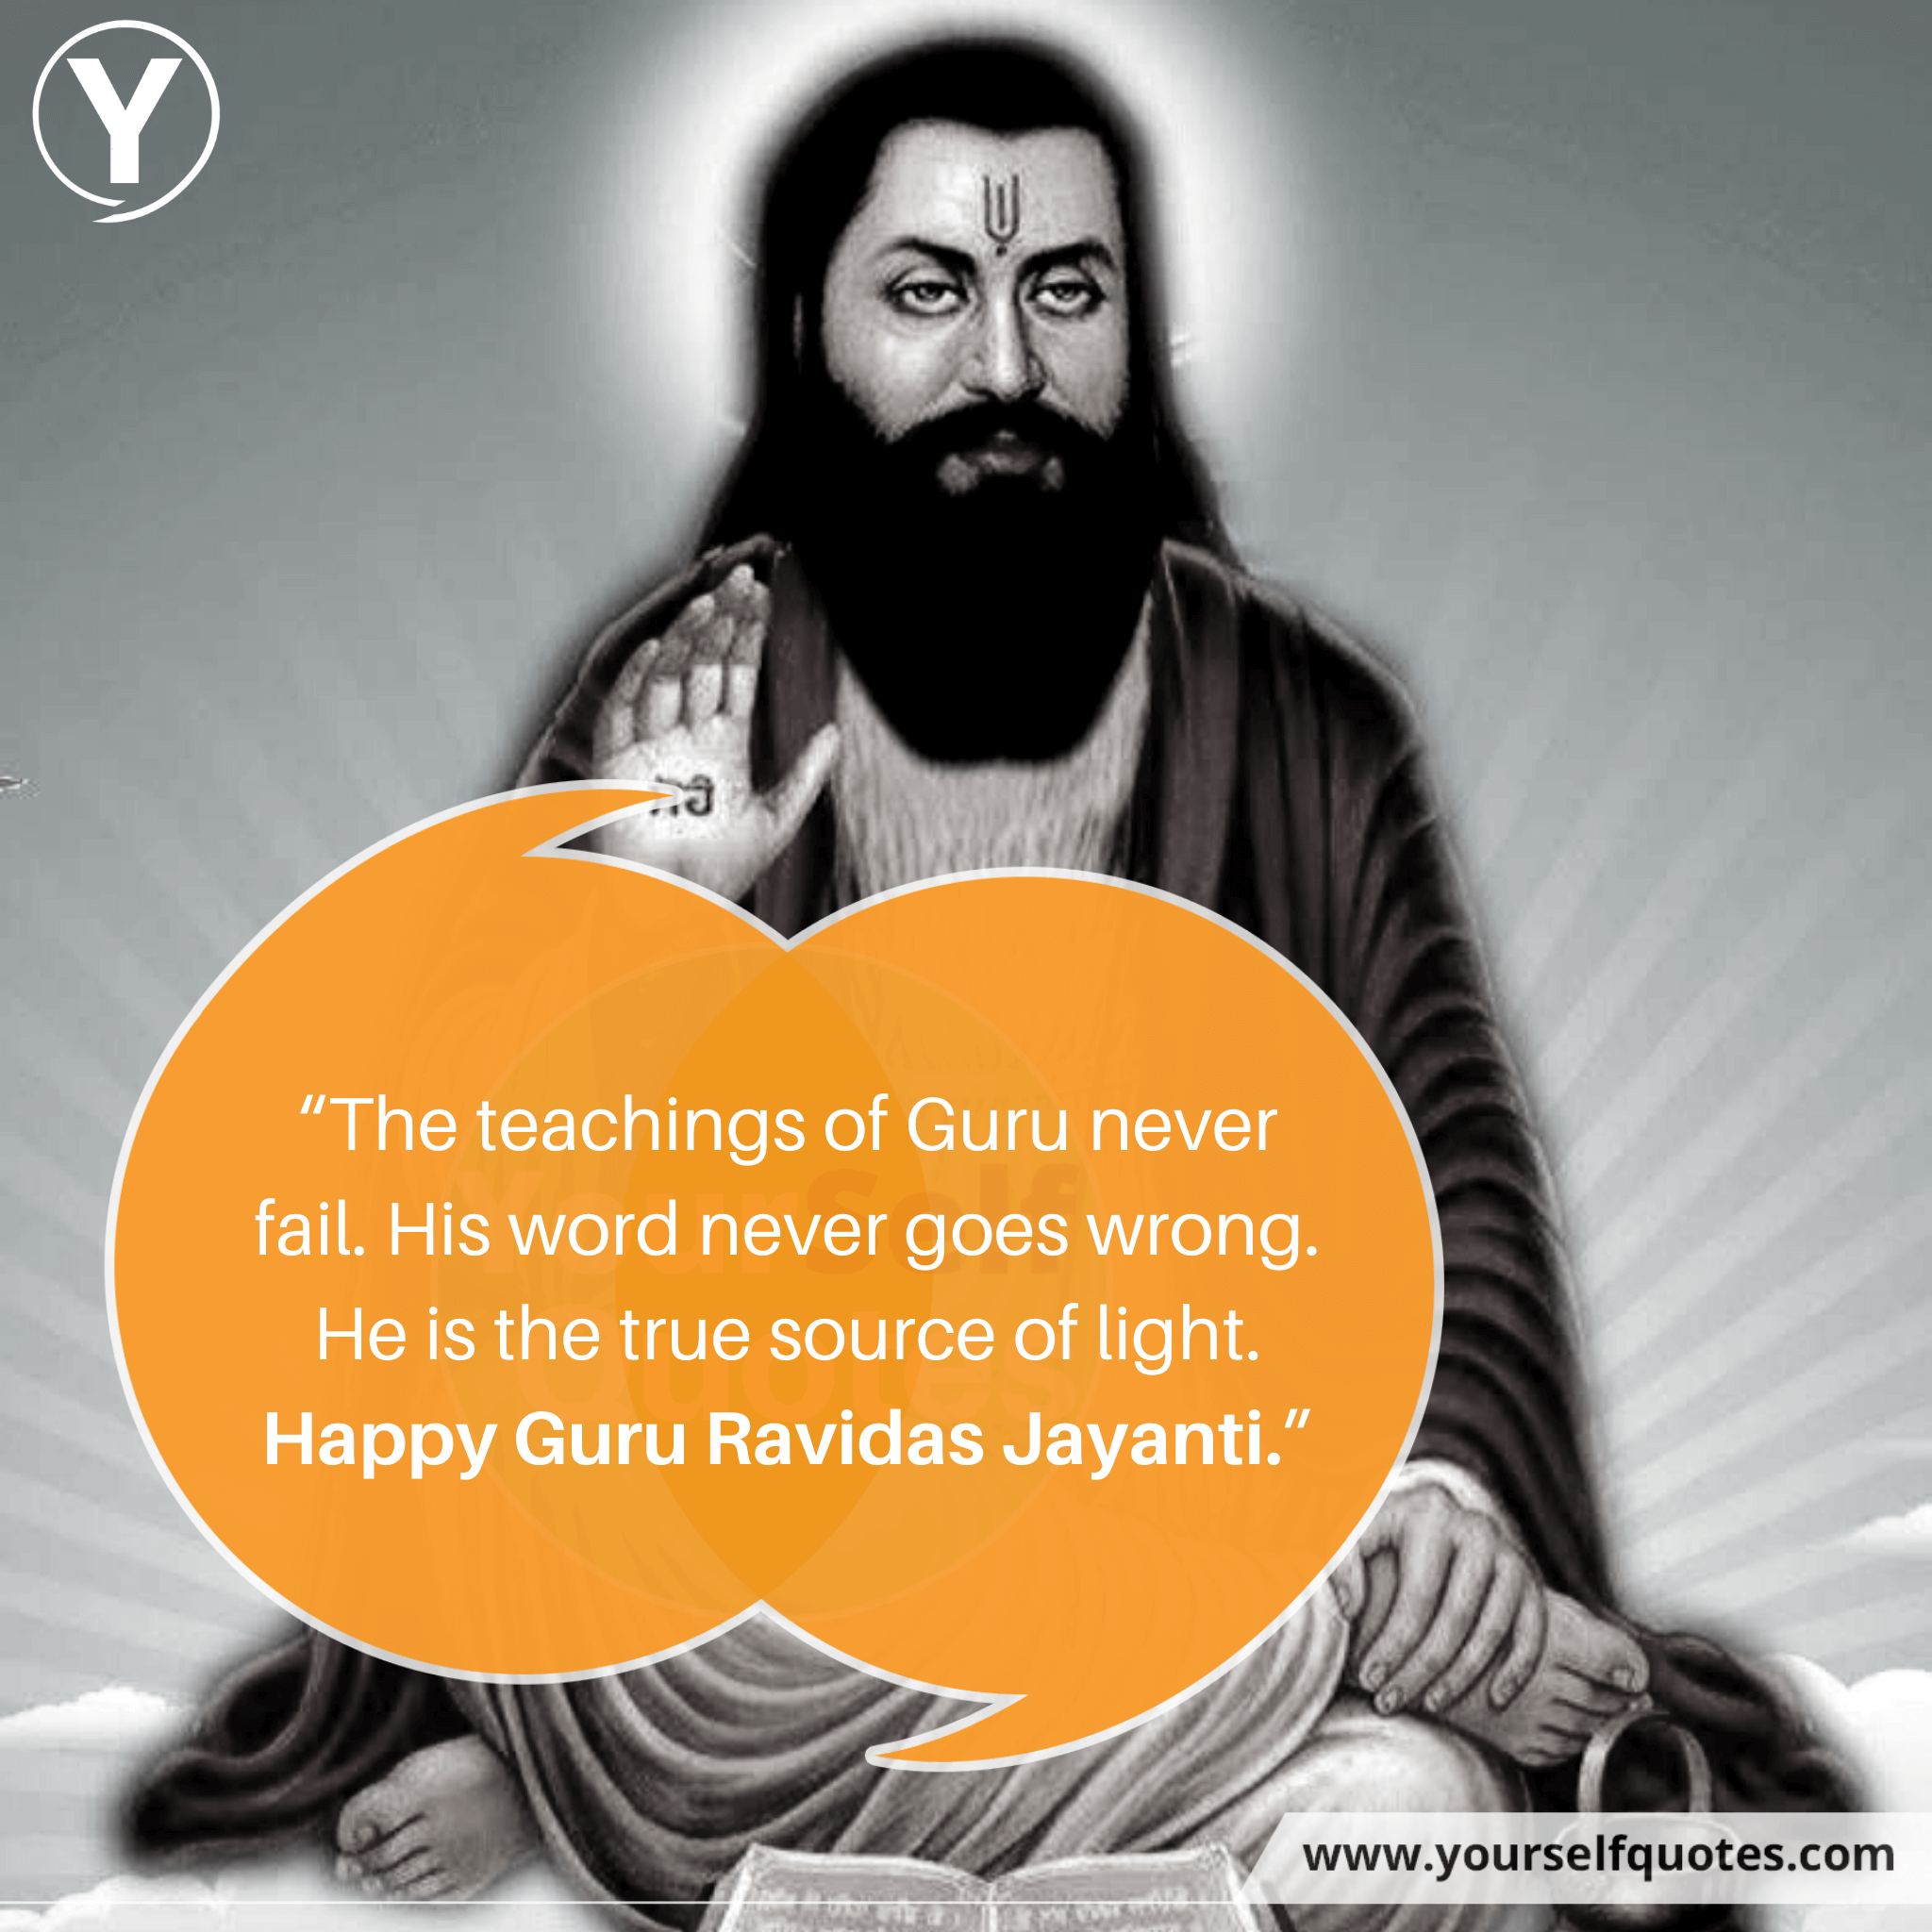 Guru Ravidas Jayanti in India